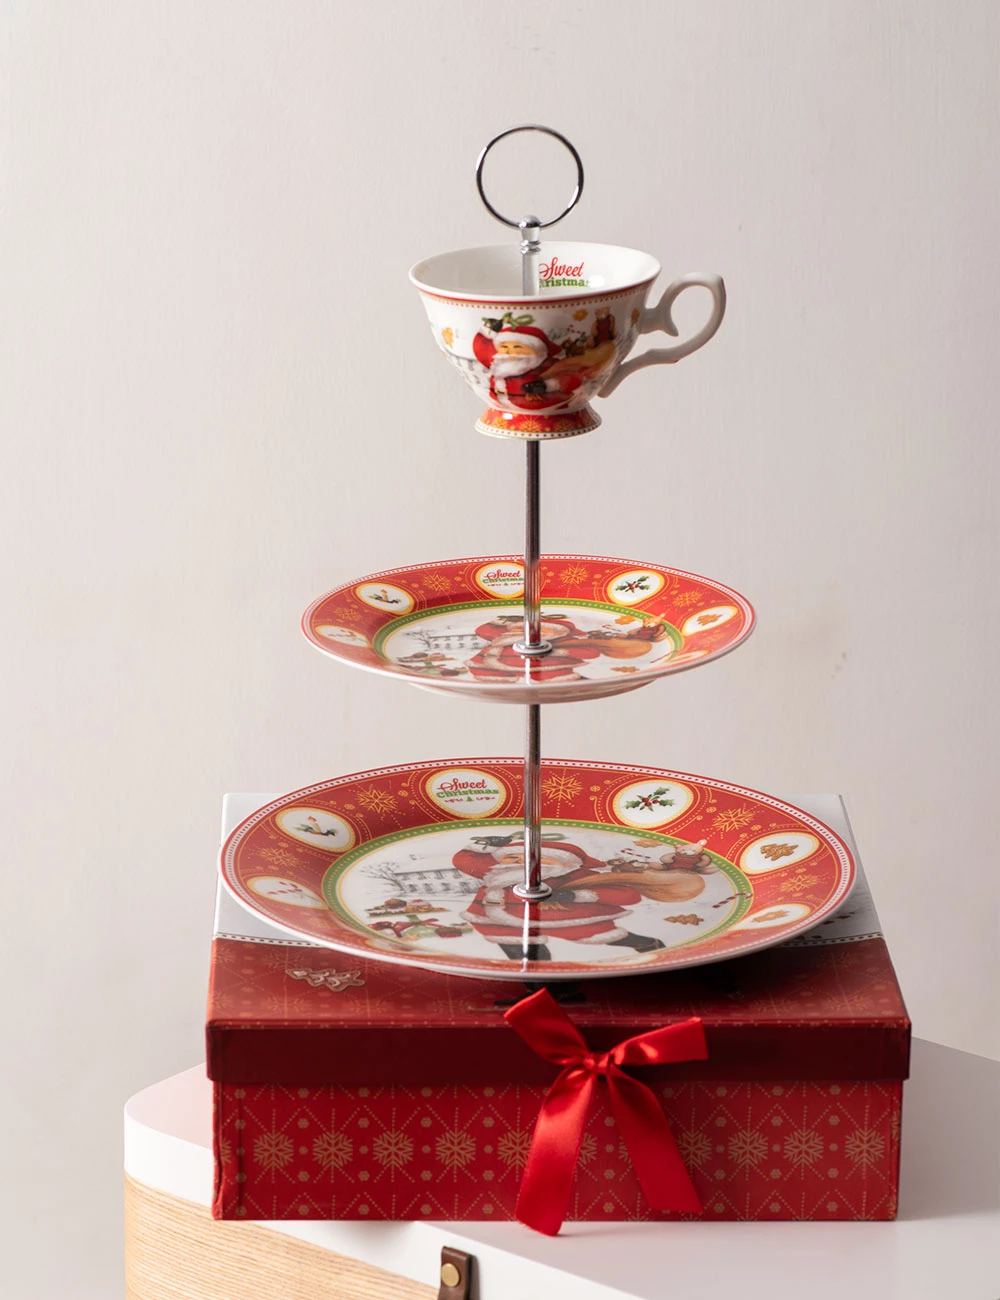 Merry Christmas 3 Tier Cake Stand Thedecorkart Tiered Cake Stand Holiday Serveware Tiered Cakes